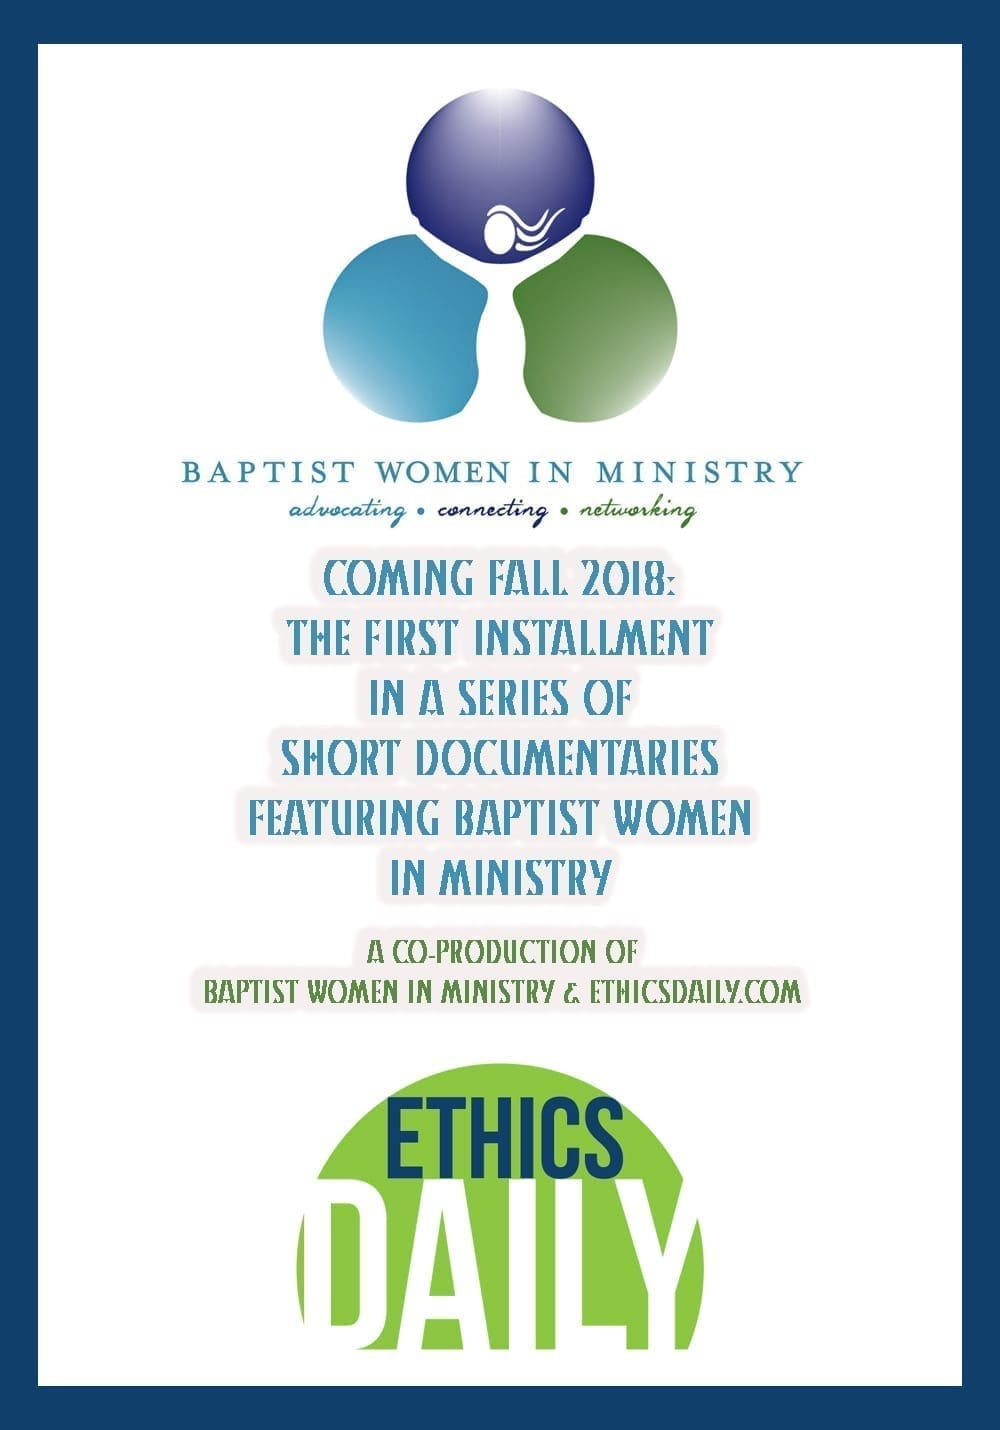 Baptist Women in Ministry and EthicsDaily.com Short Documentary Co-Production